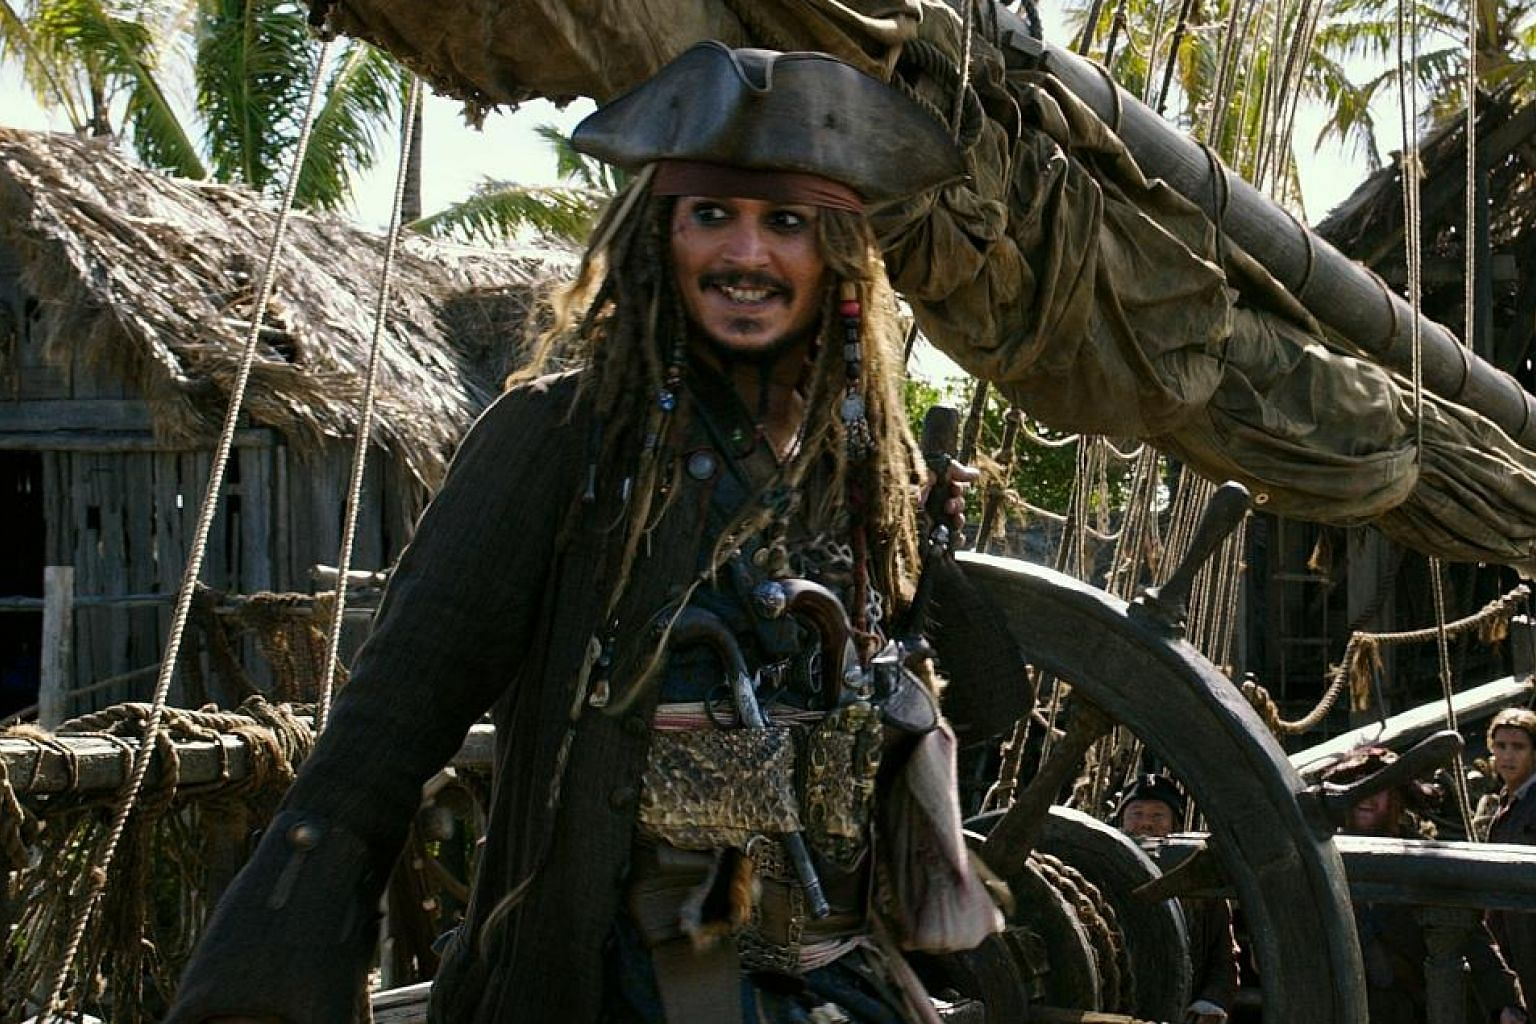 Johnny Depp in Pirates Of The Caribbean 5: Salazar's Revenge. The film is marked by a large action setpiece every 10 minutes and packed with ghostly visual effects.